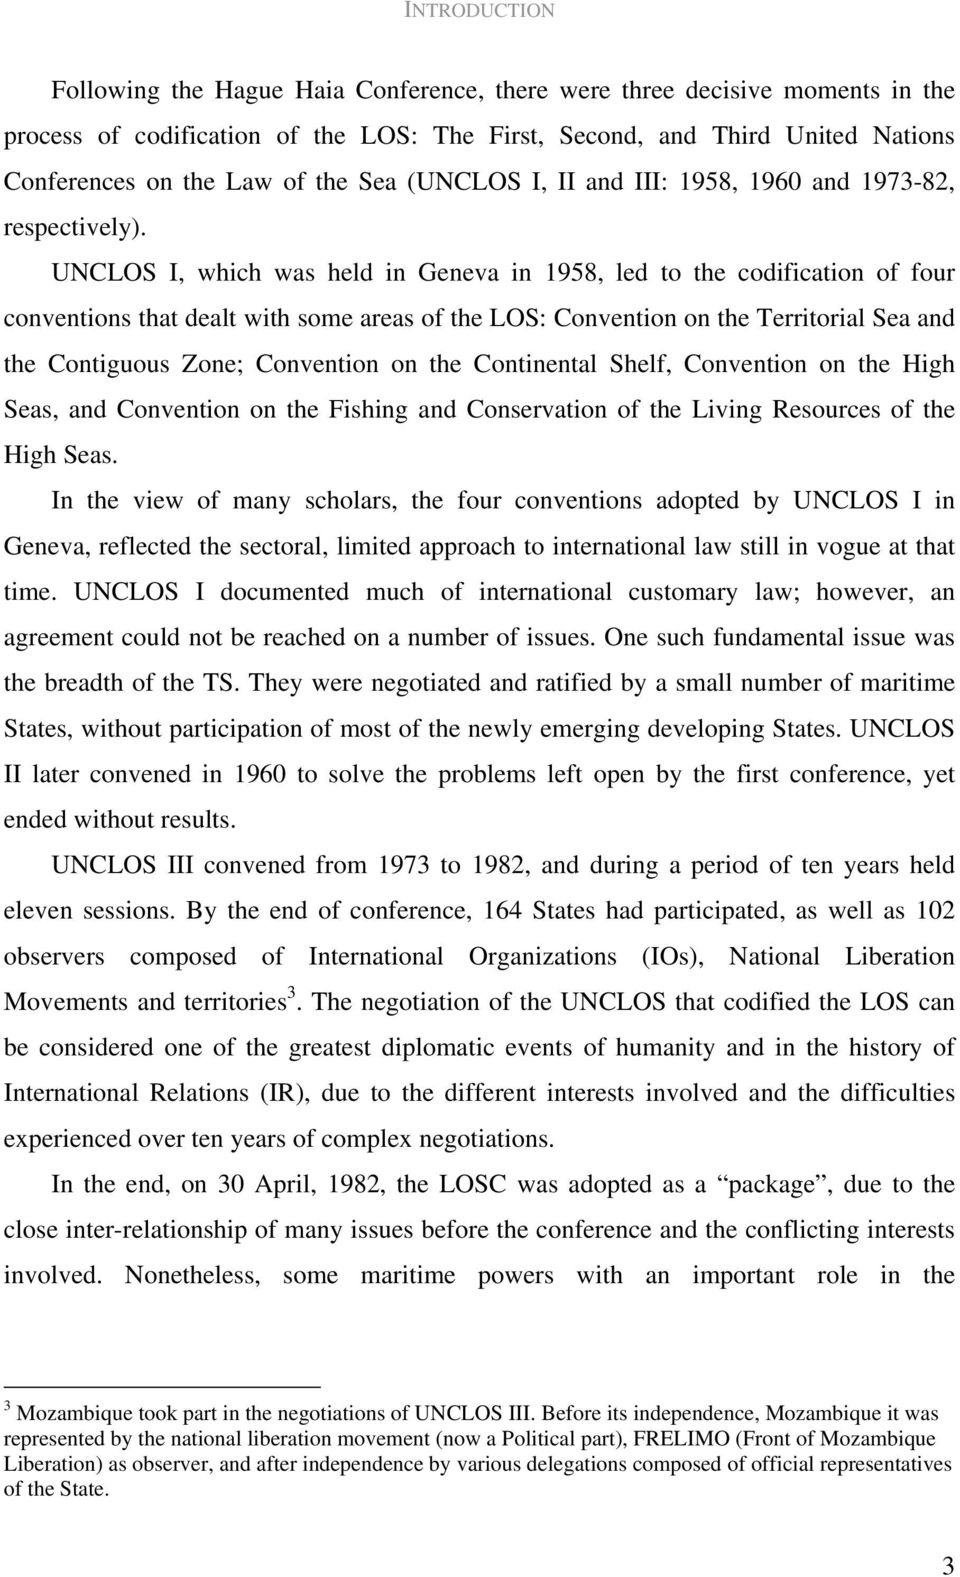 UNCLOS I, which was held in Geneva in 1958, led to the codification of four conventions that dealt with some areas of the LOS: Convention on the Territorial Sea and the Contiguous Zone; Convention on